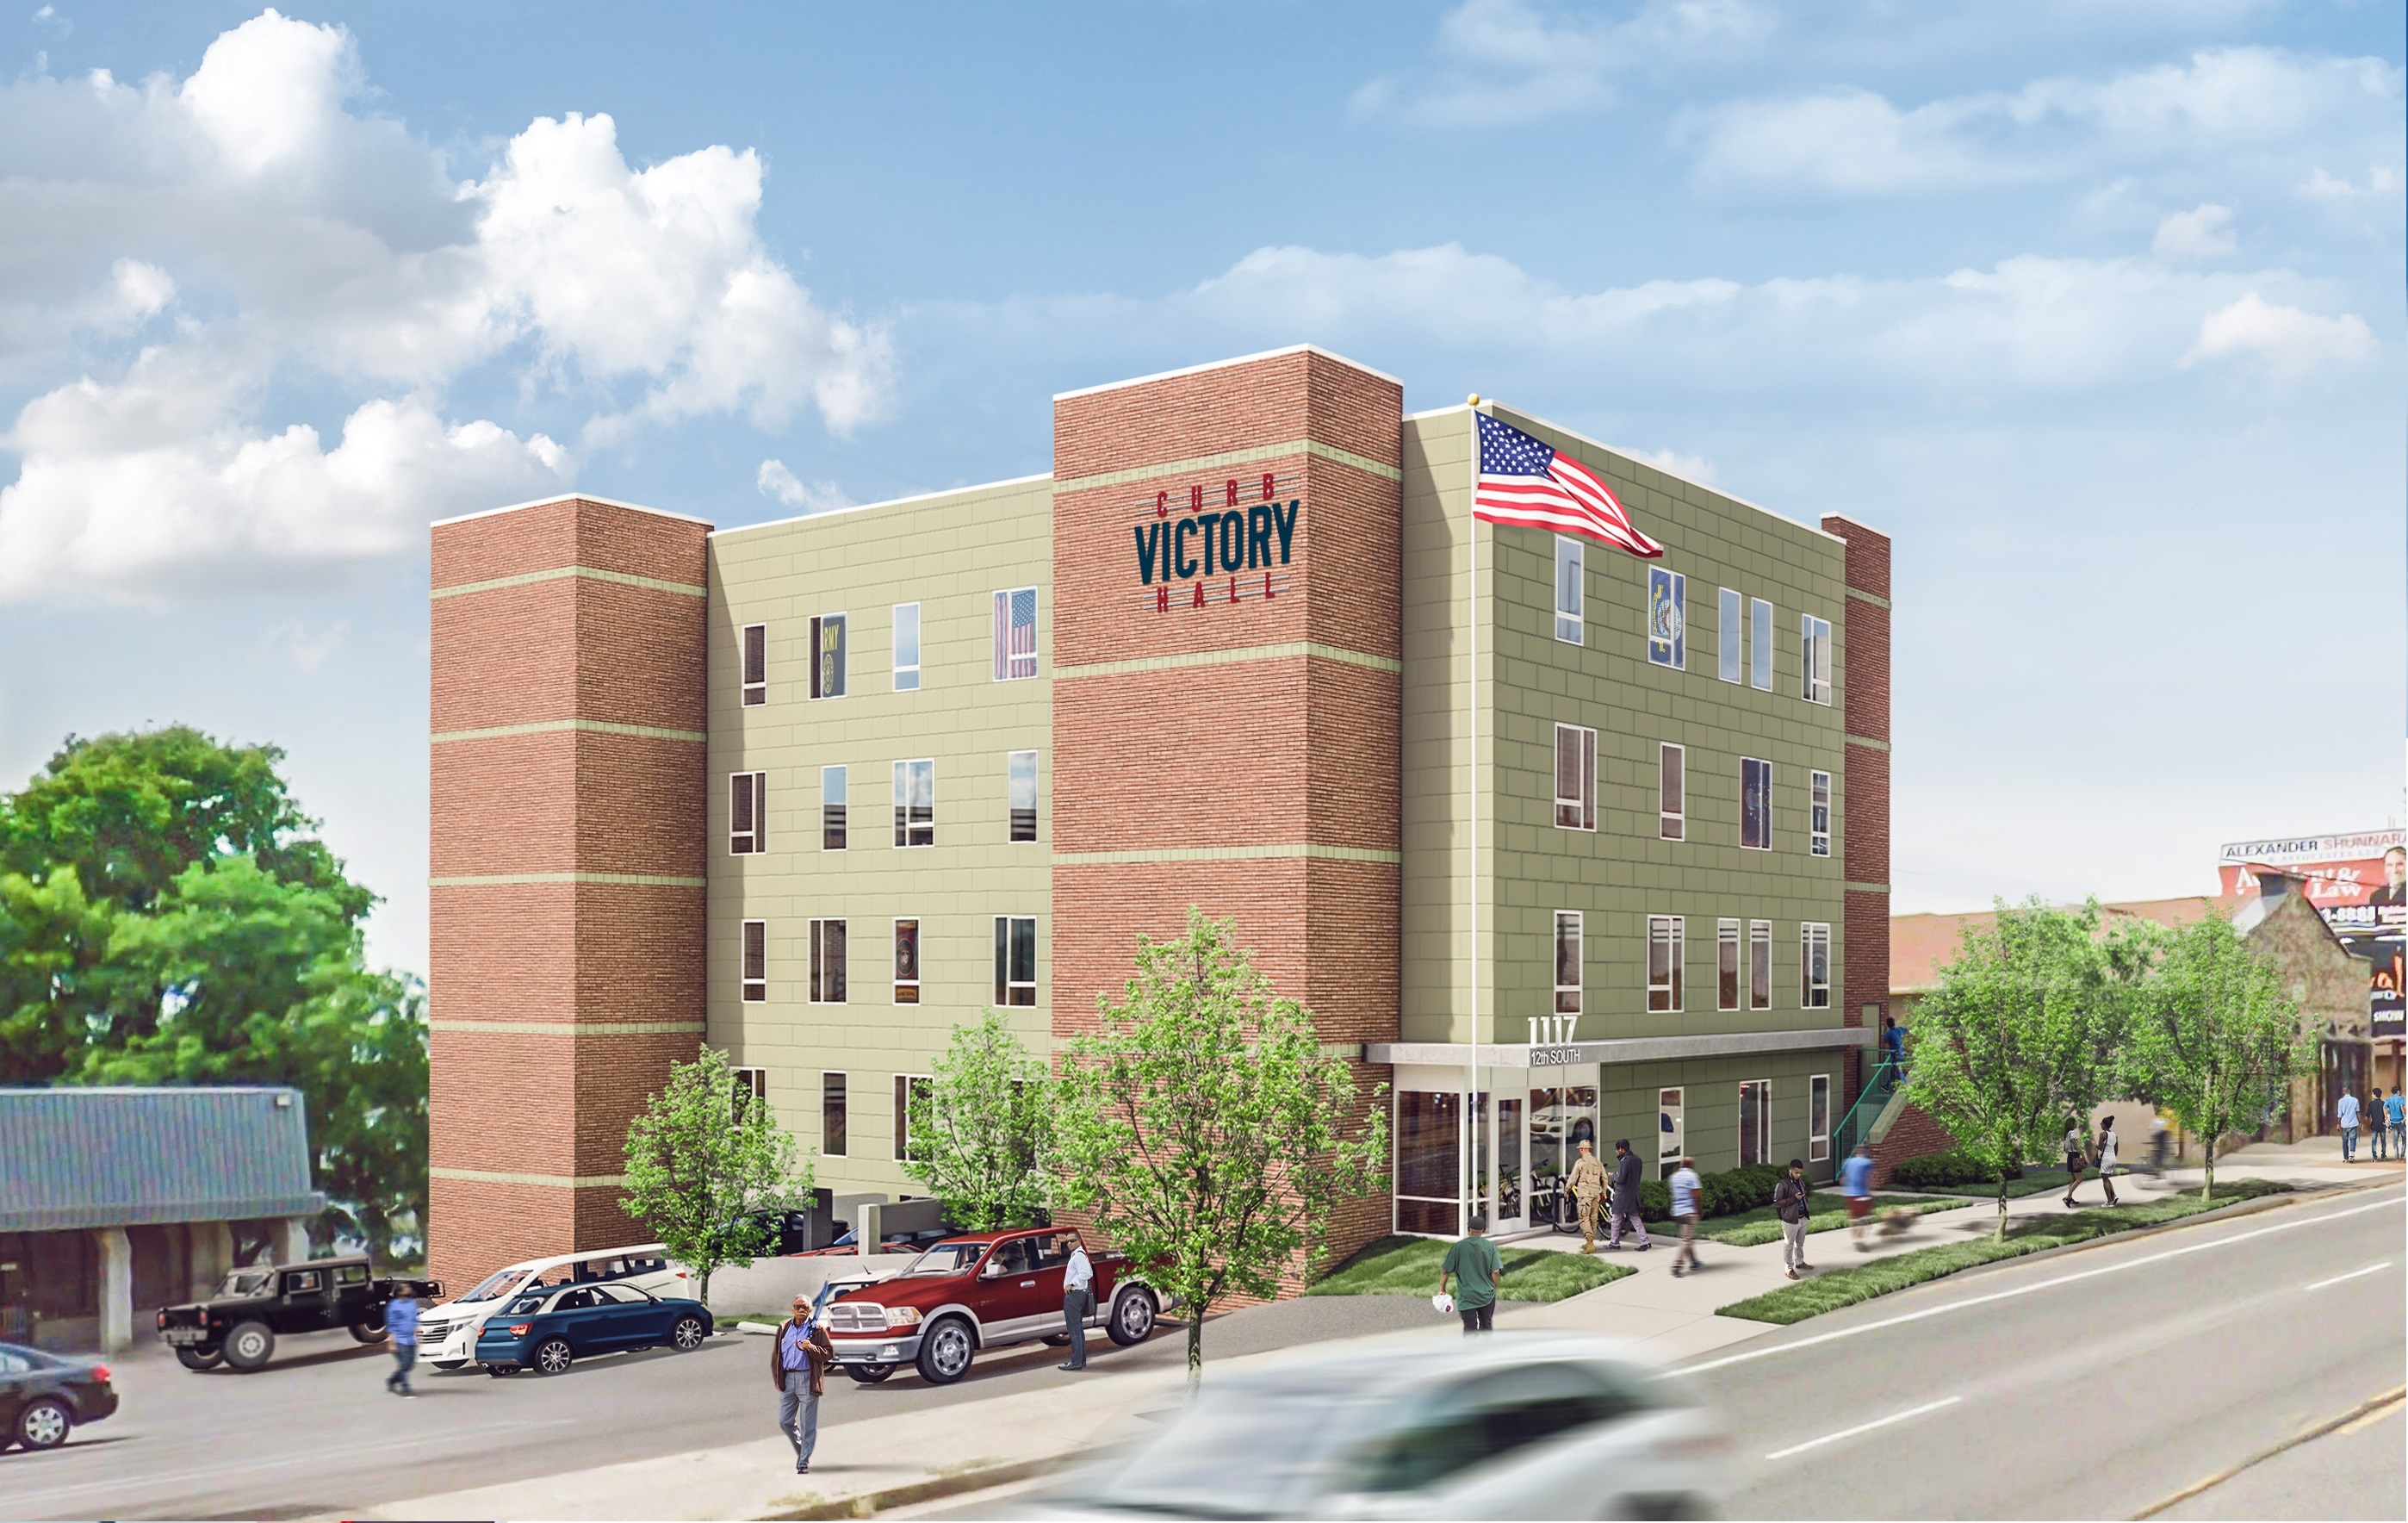 curb-victory-hall-rendering